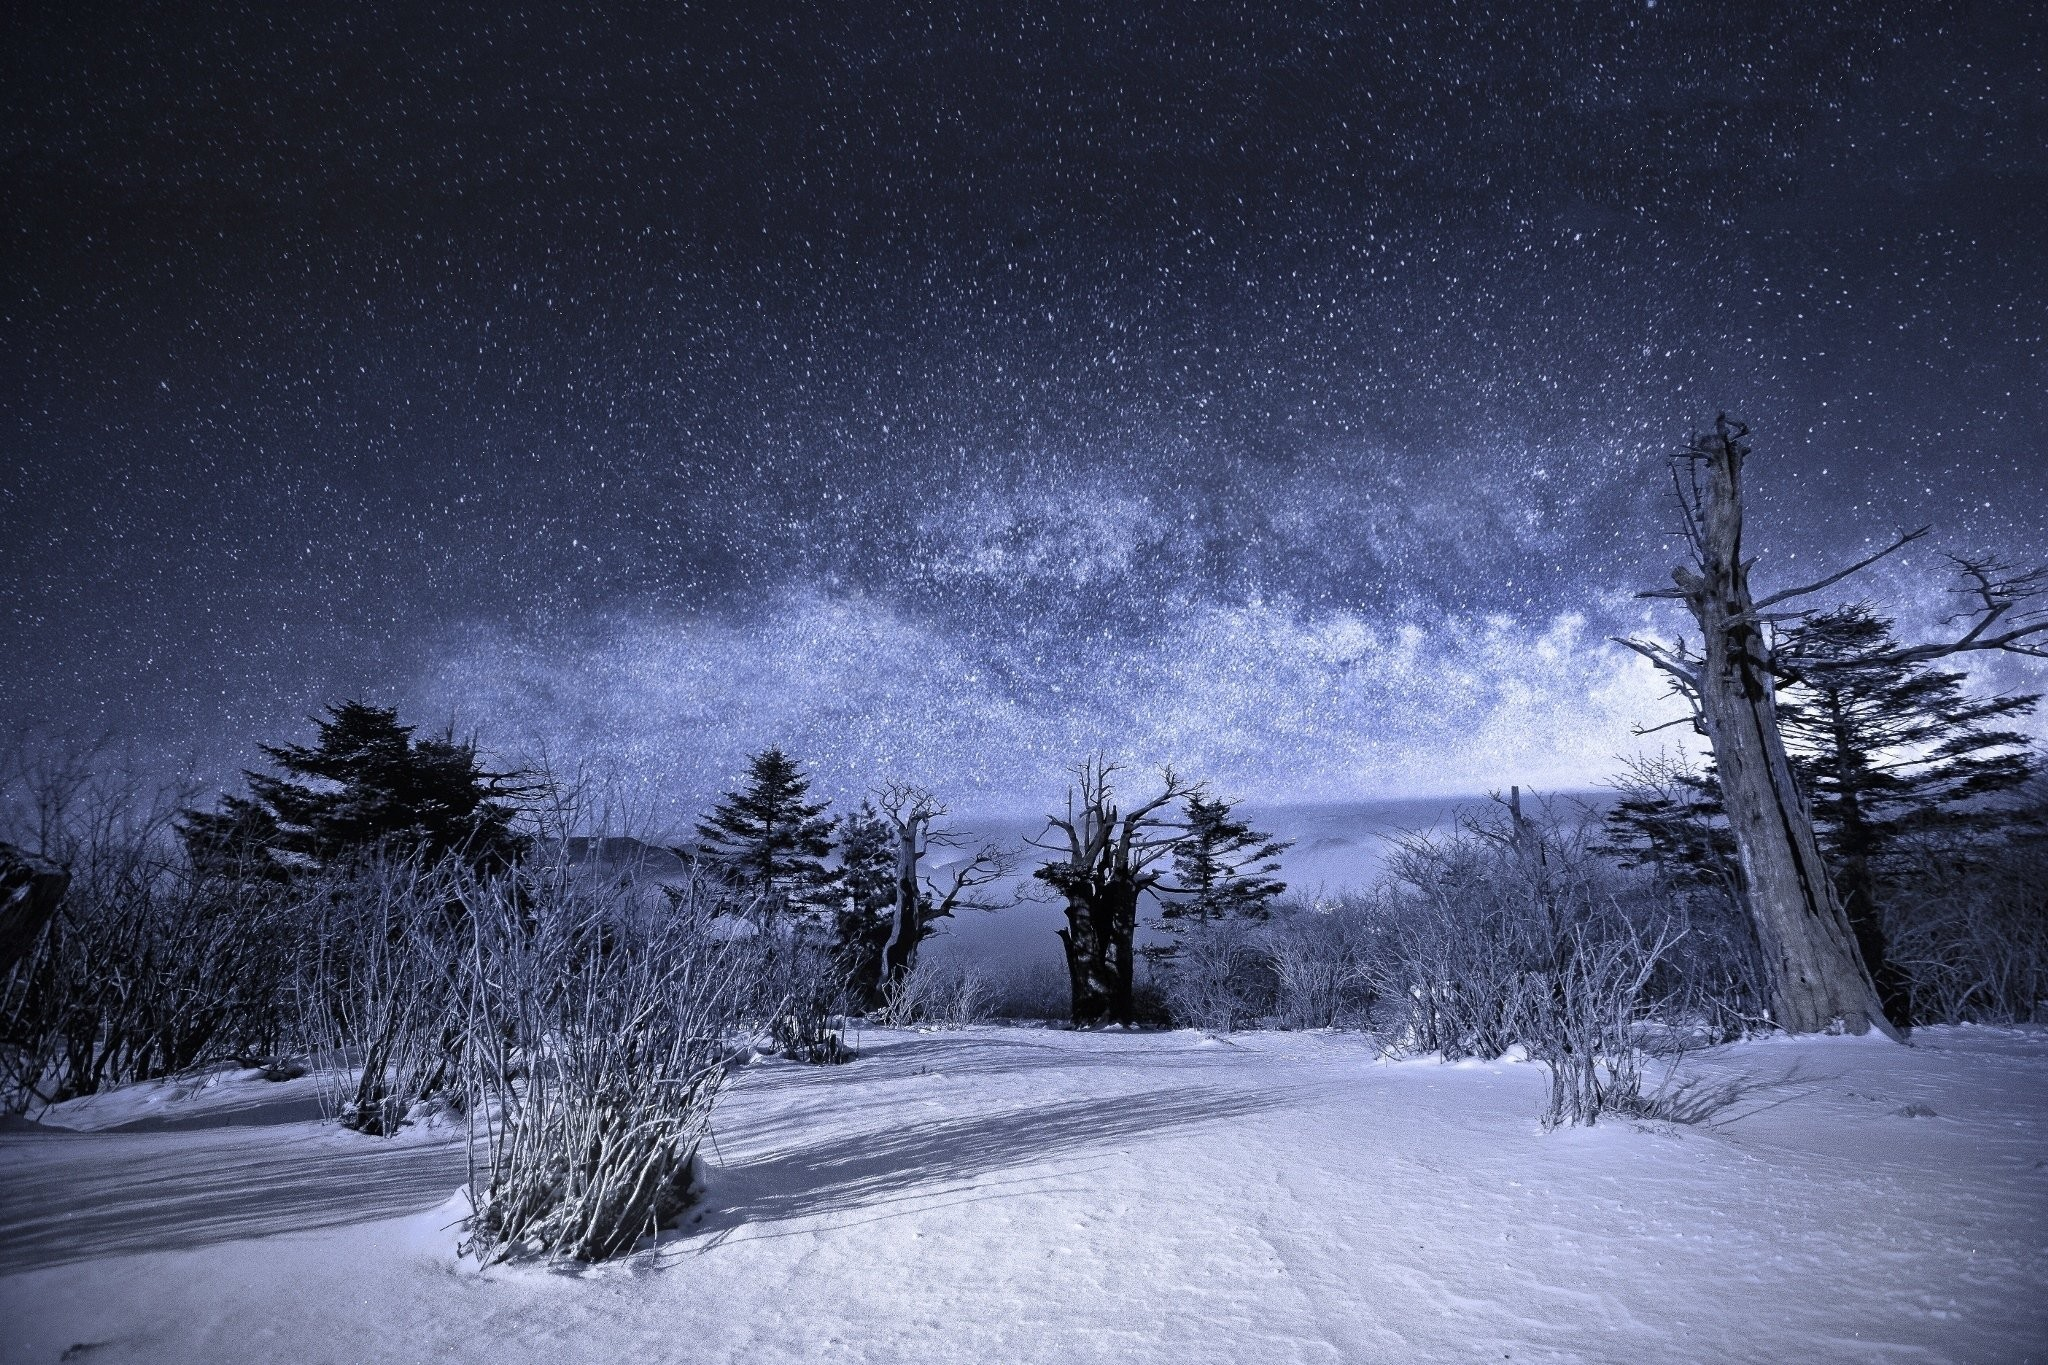 Snow Landscape Stars Nature Night Sky Winter Beautiful Wallpapers Images –  2048×1365